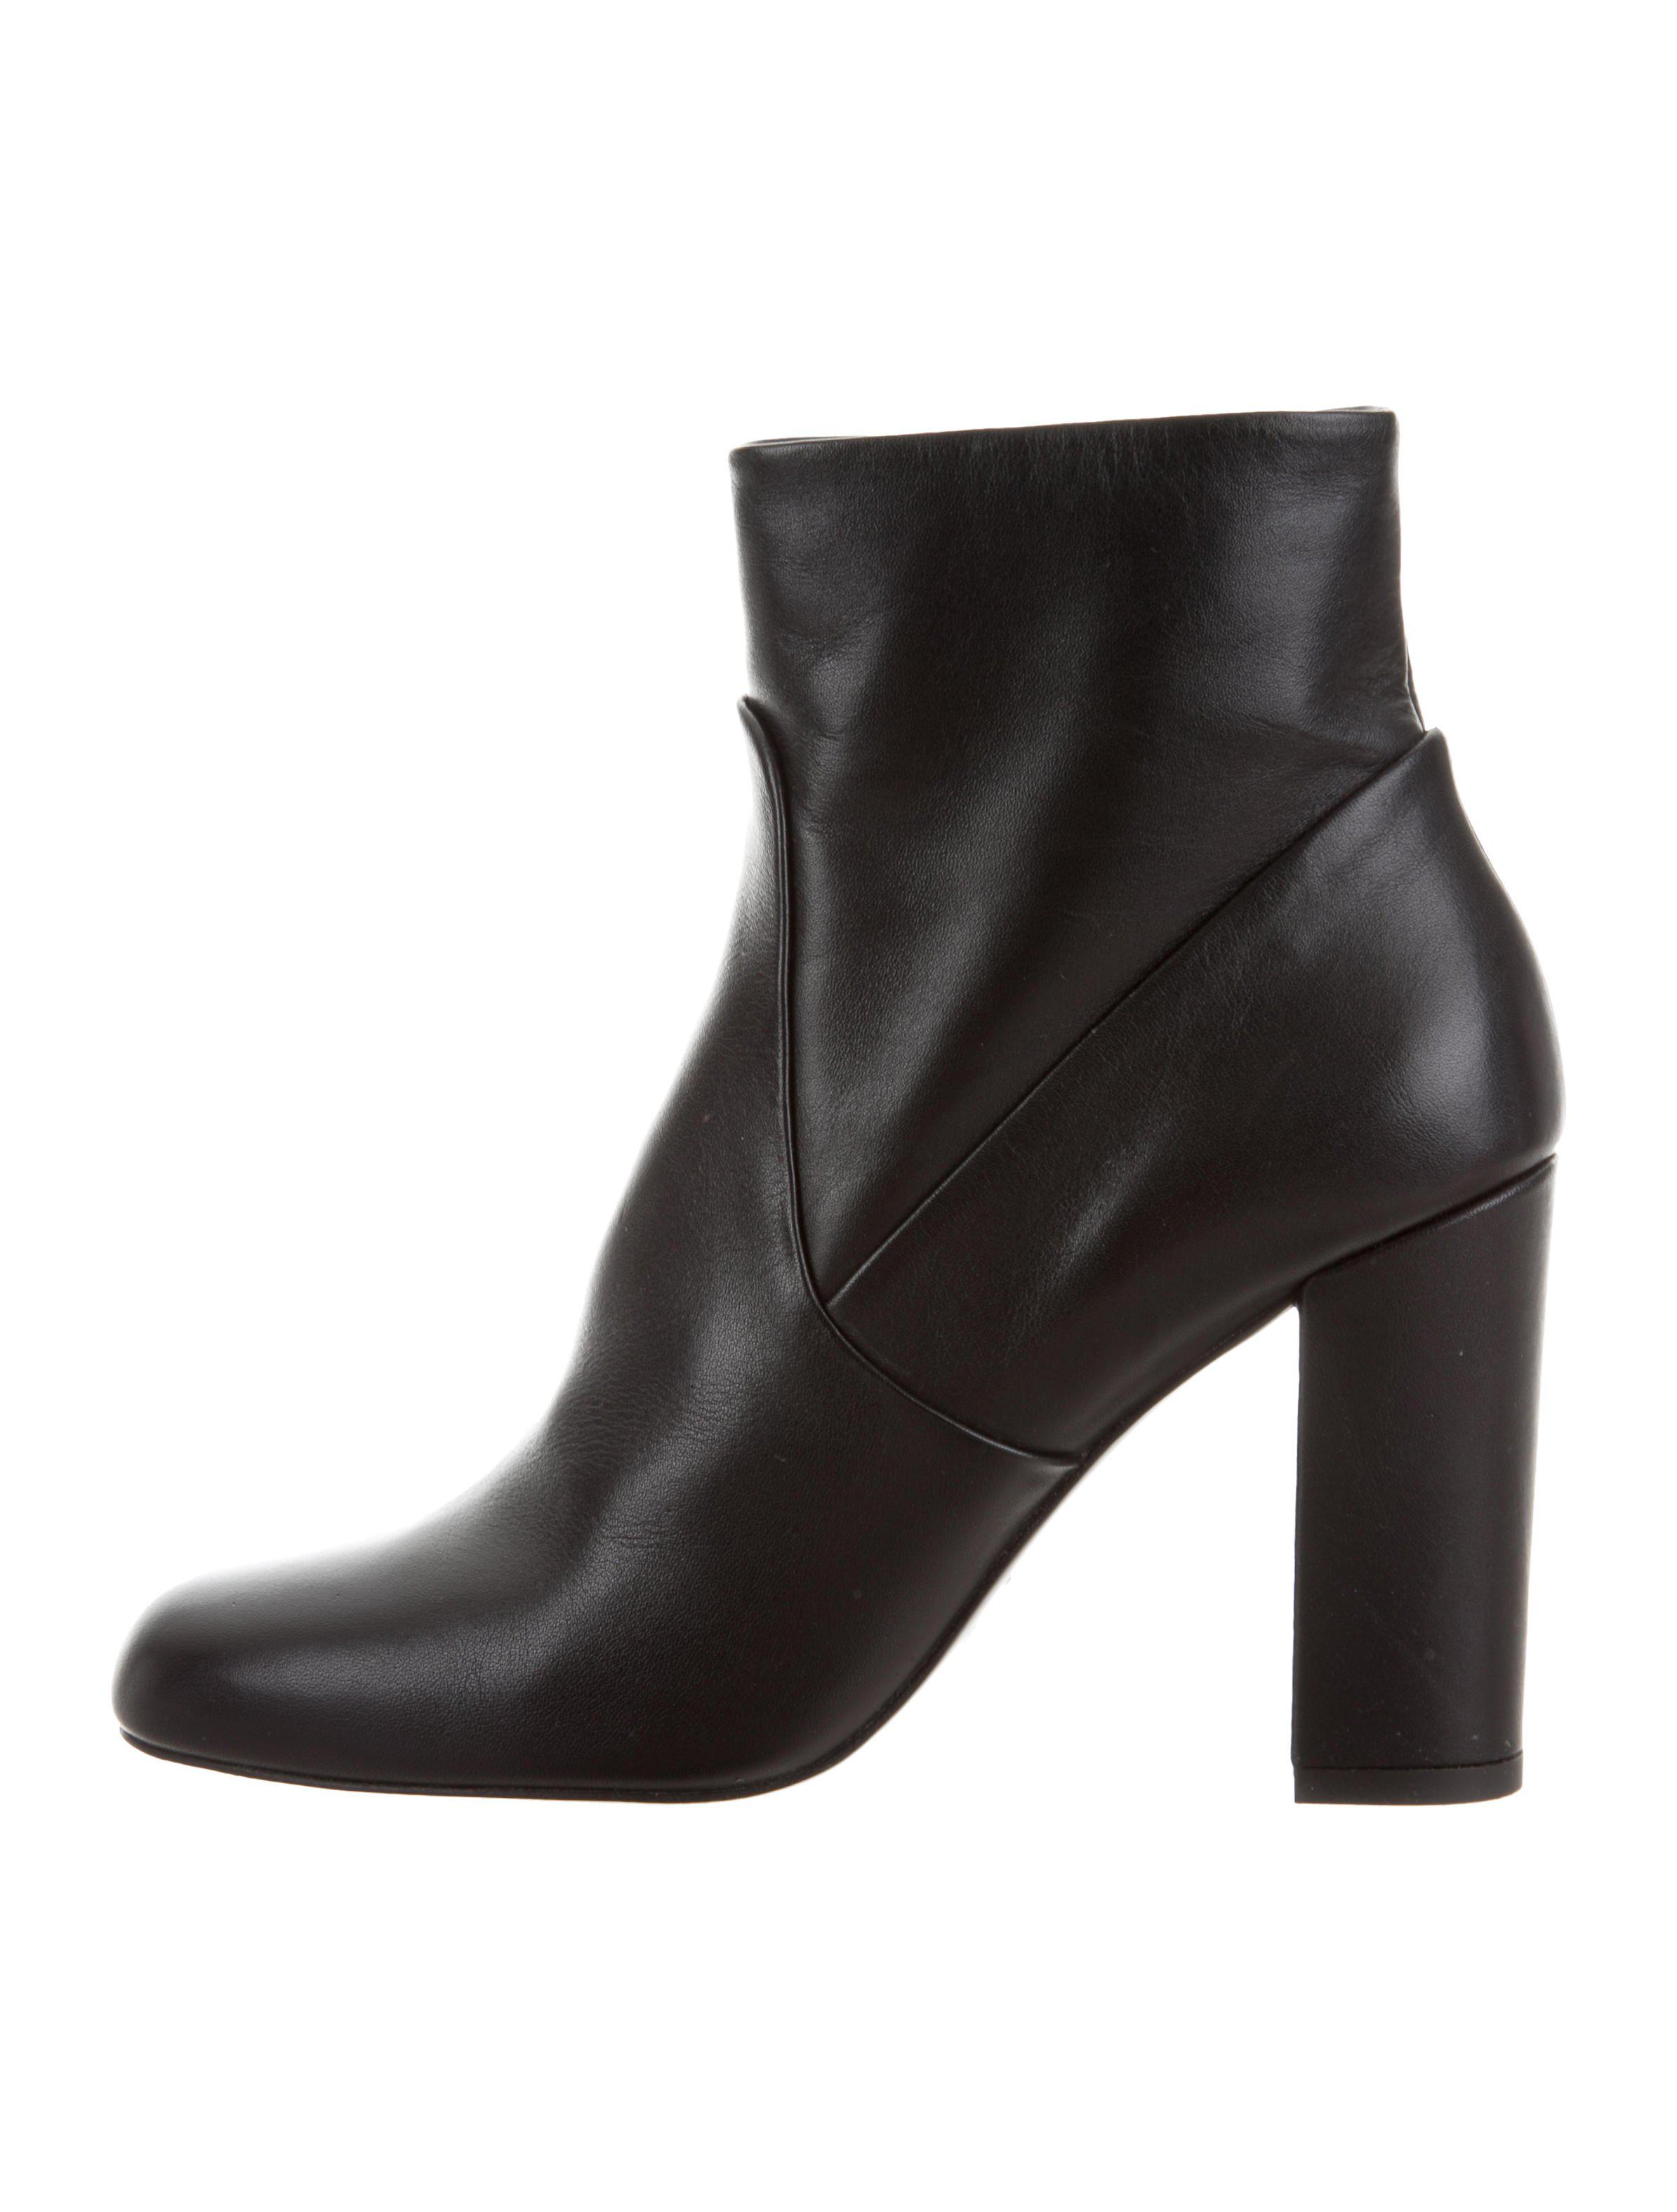 Iro Leather Ankle Boots w/ Tags sale online 8EbghKmZmG